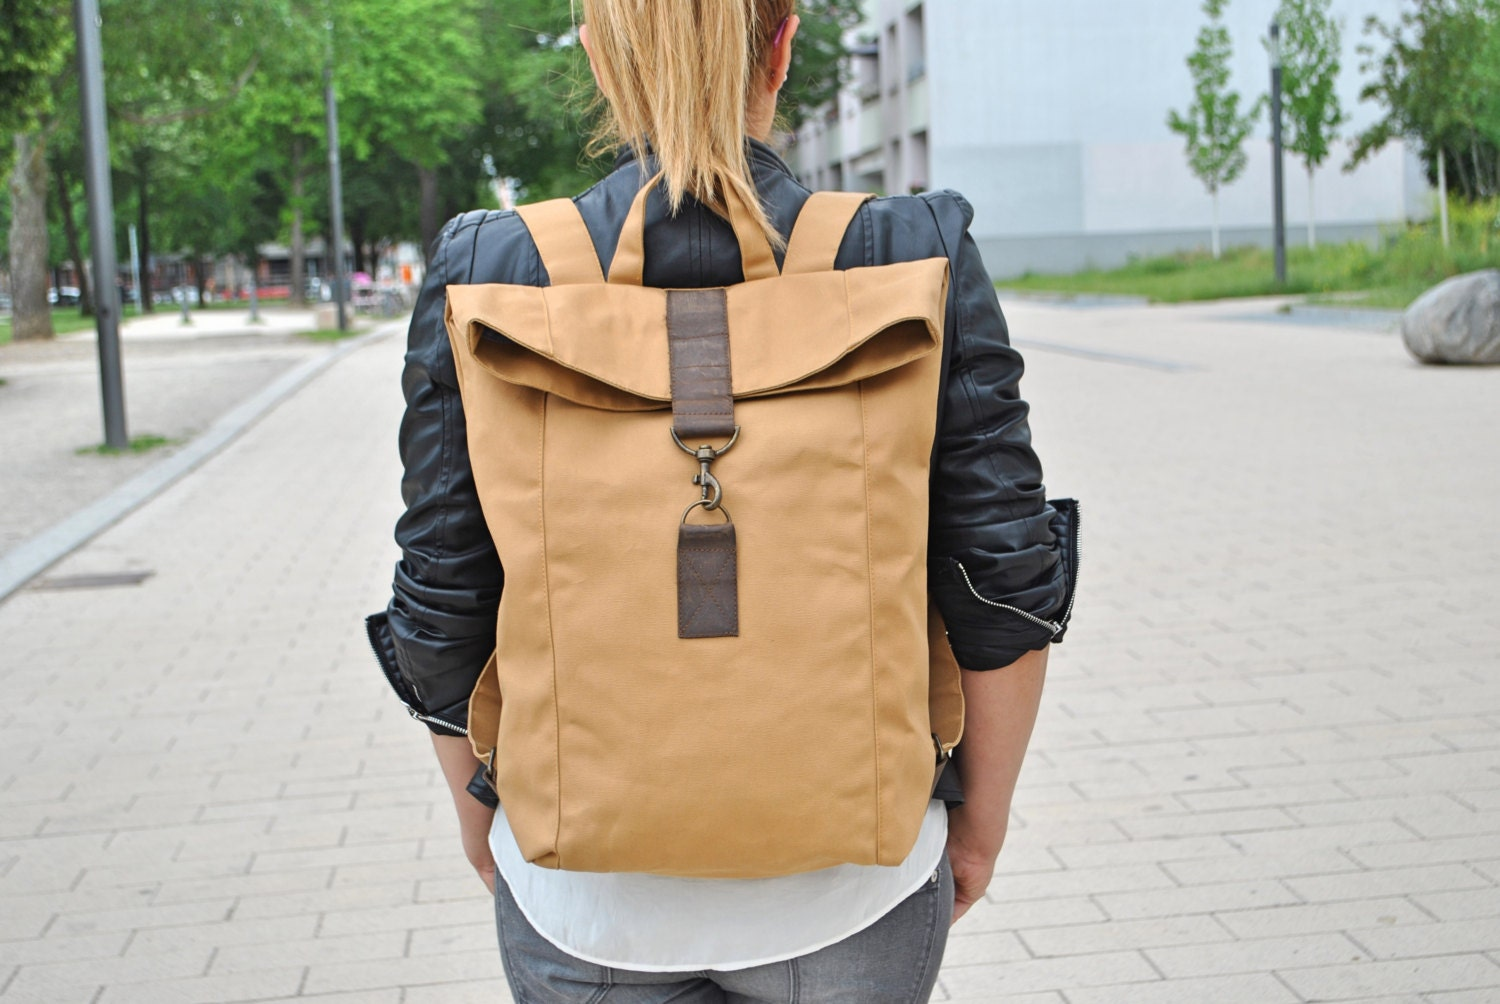 beige canvas rucksack wasserabweisend gro laptop tasche. Black Bedroom Furniture Sets. Home Design Ideas